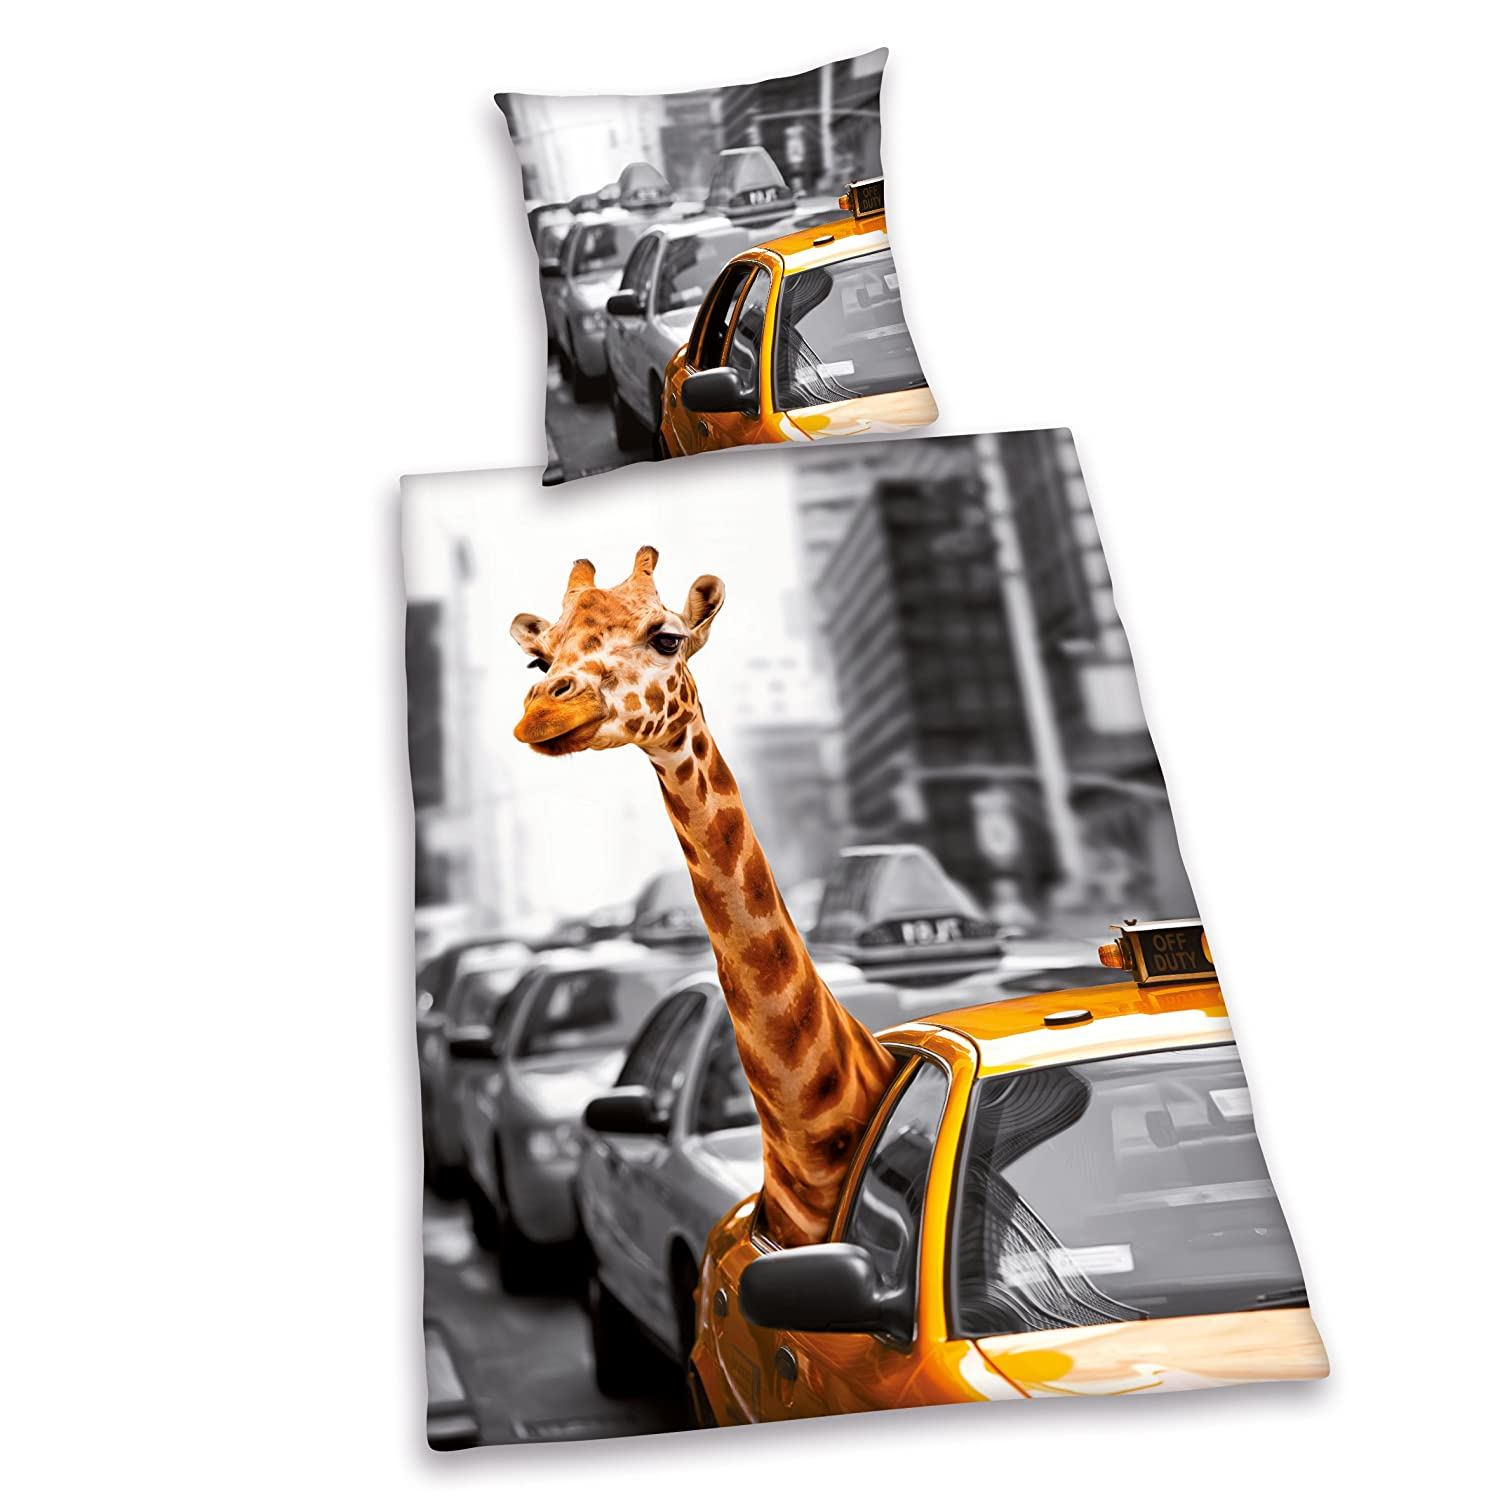 New York Taxi Cab and Giraffe Single/US Twin Duvet Cover